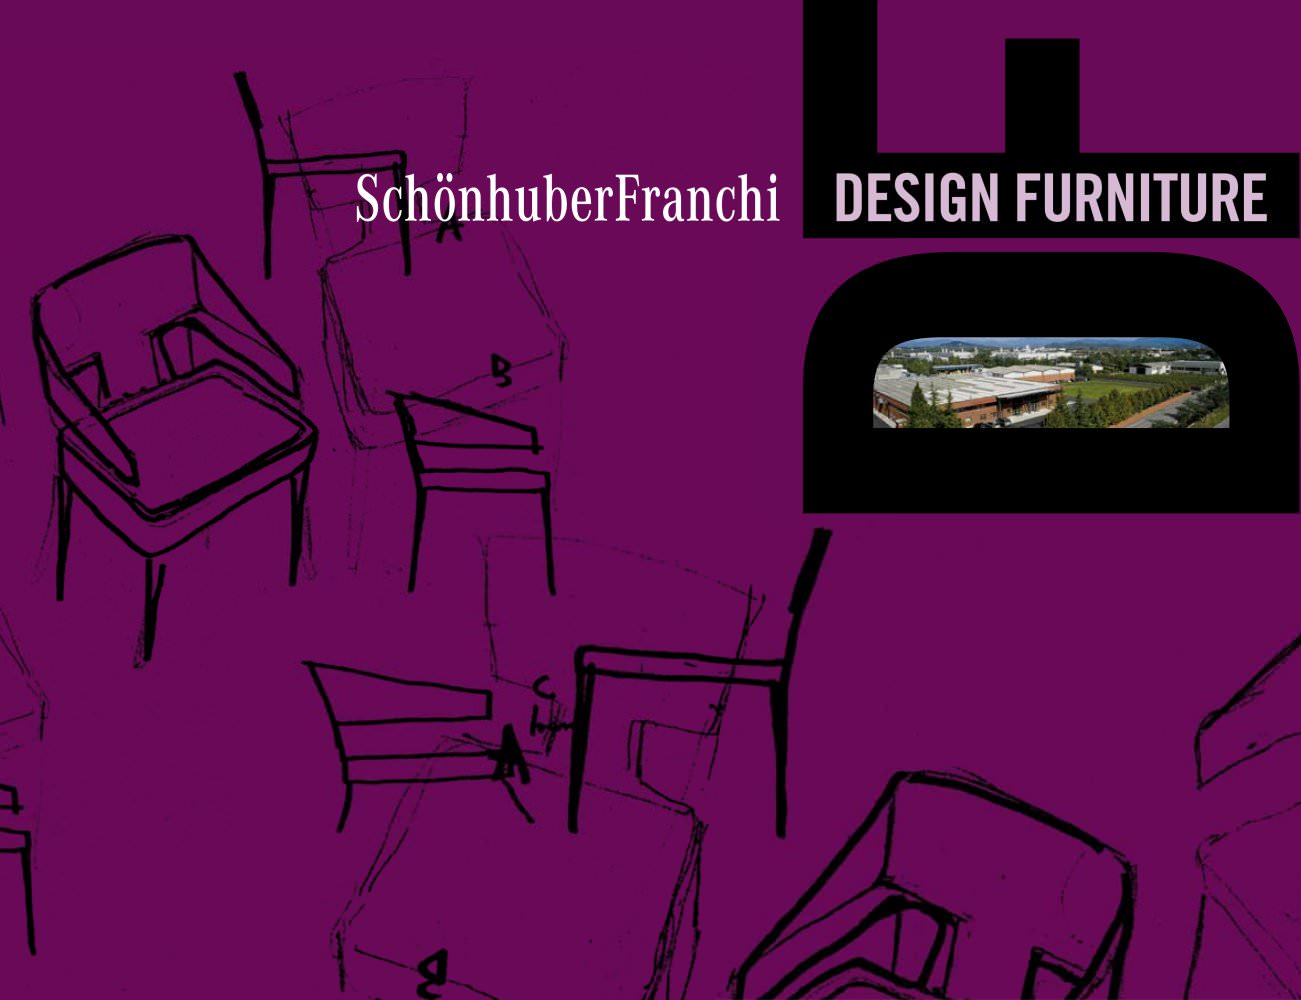 Design Furniture   1   121 Pages. Design Furniture   Schoenhuber Franchi   PDF Catalogues